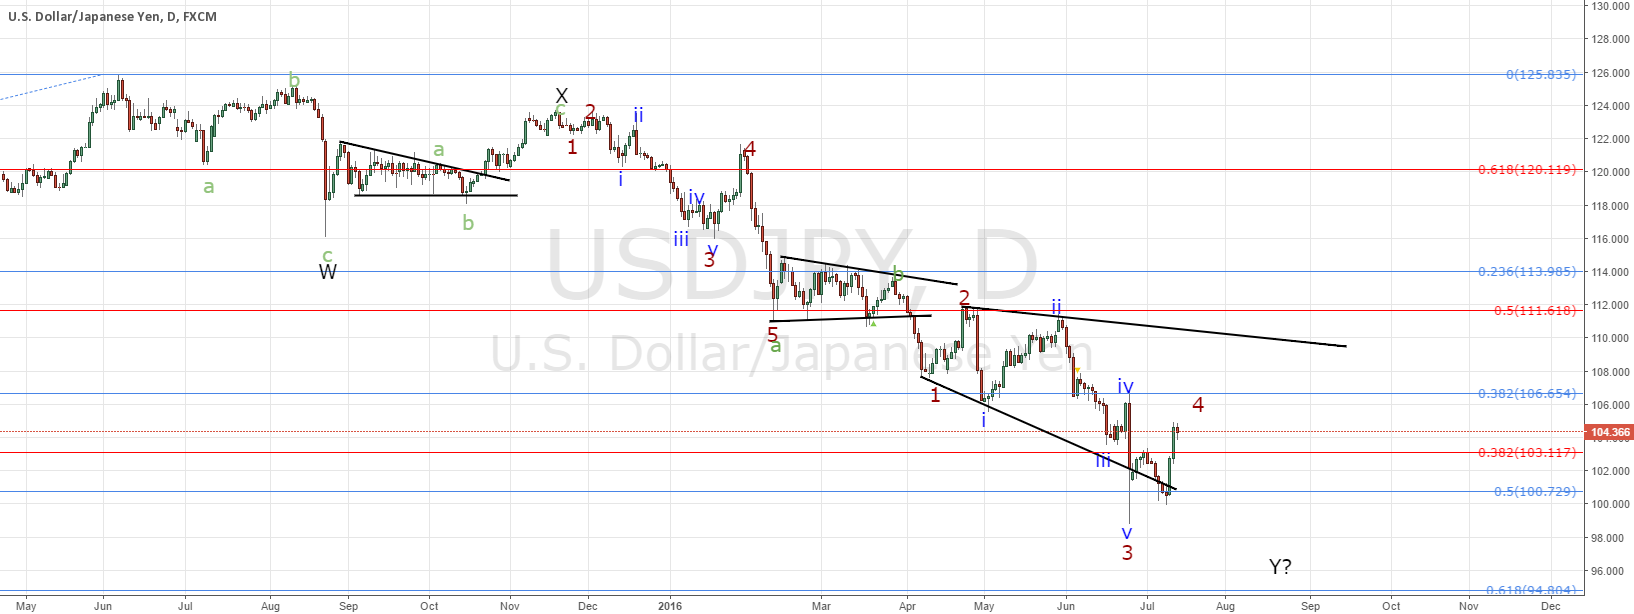 USDJPY, little higher then down